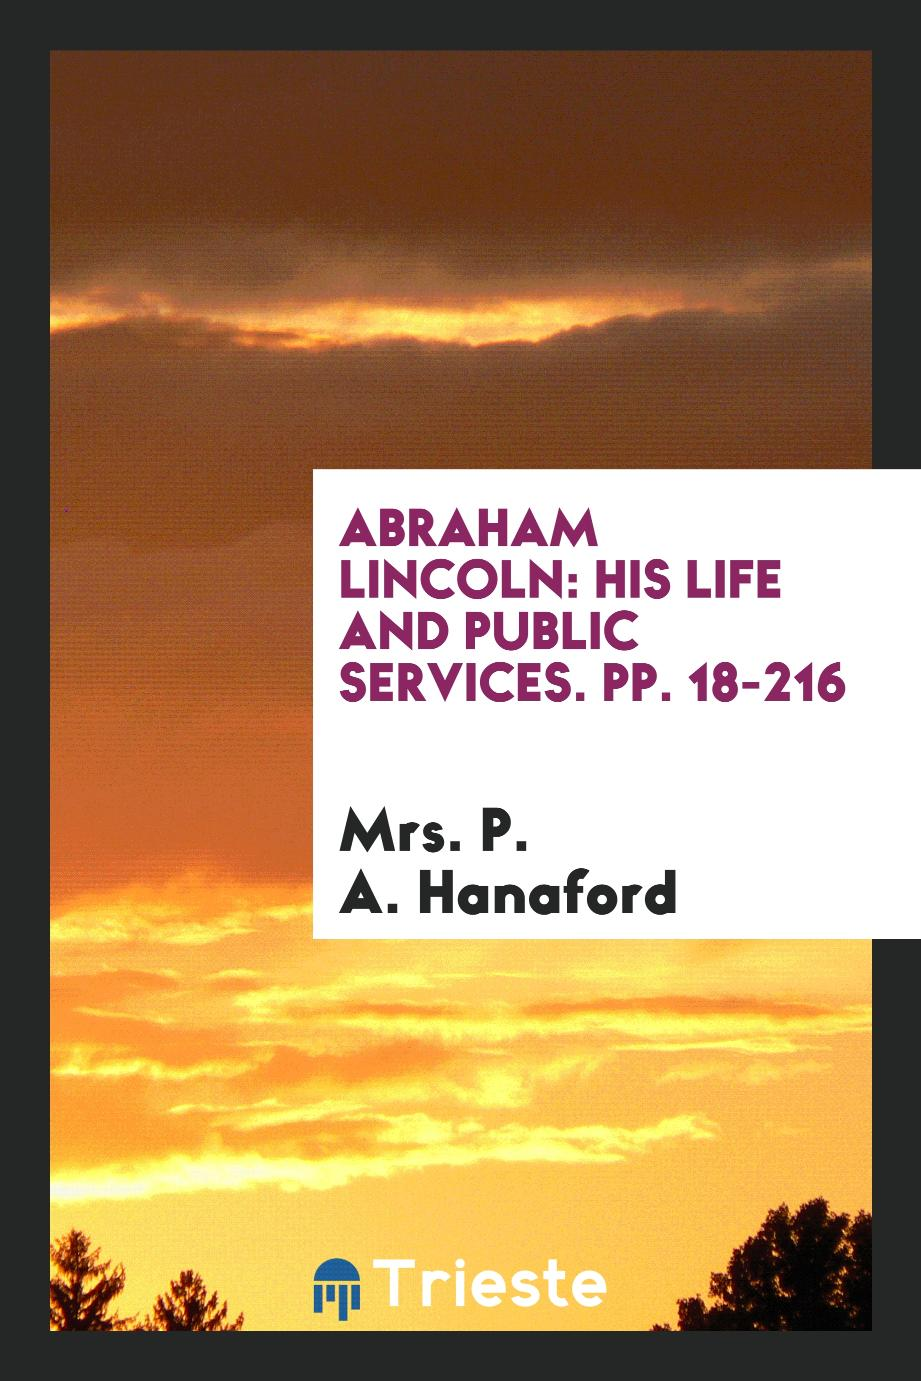 Abraham Lincoln: His Life and Public Services. pp. 18-216